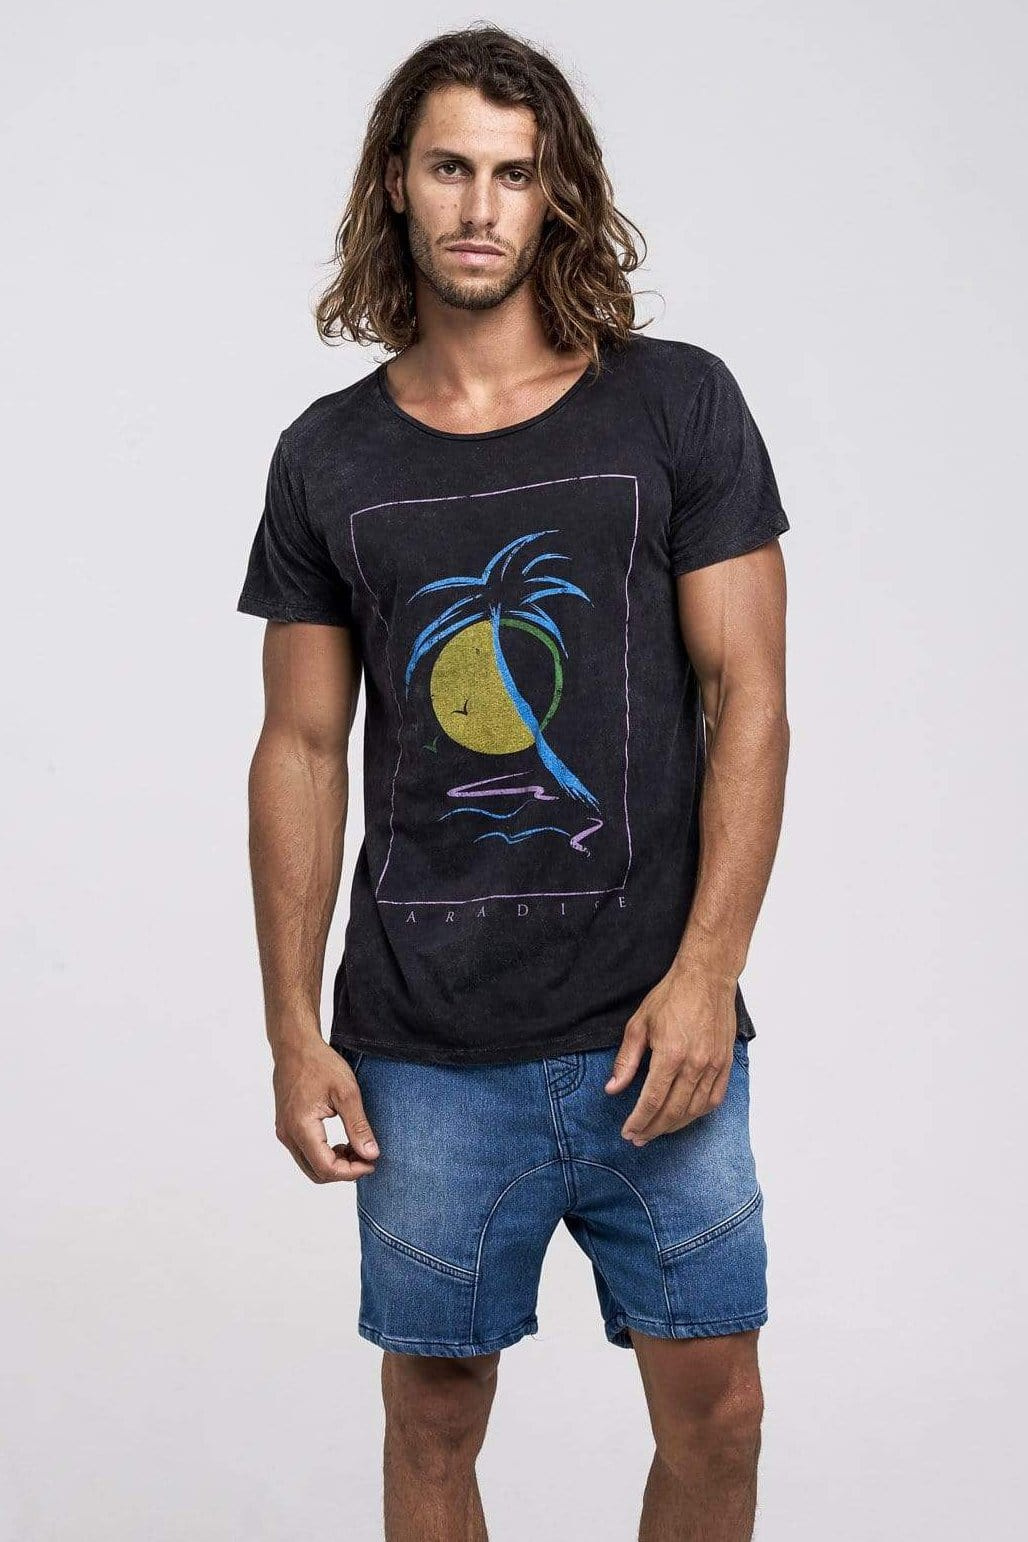 Solomoon Tee - Man T-Shirt - LOST IN PARADISE